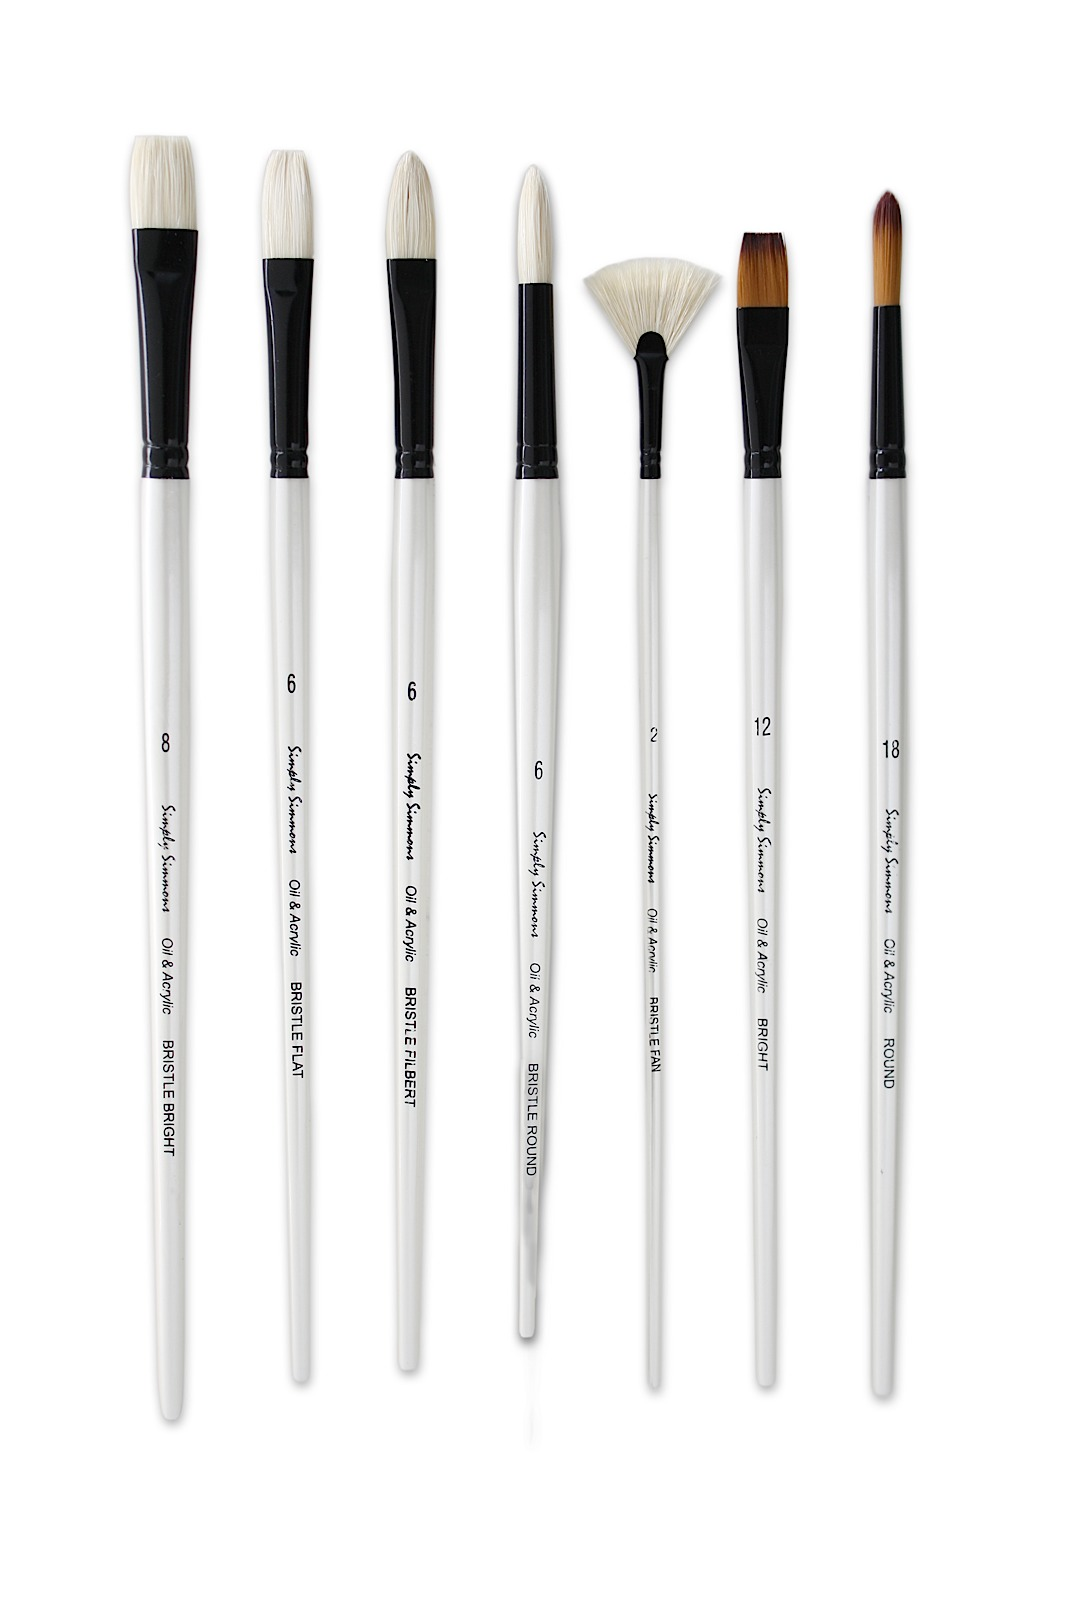 Simply Simmons Long Handle Brushes